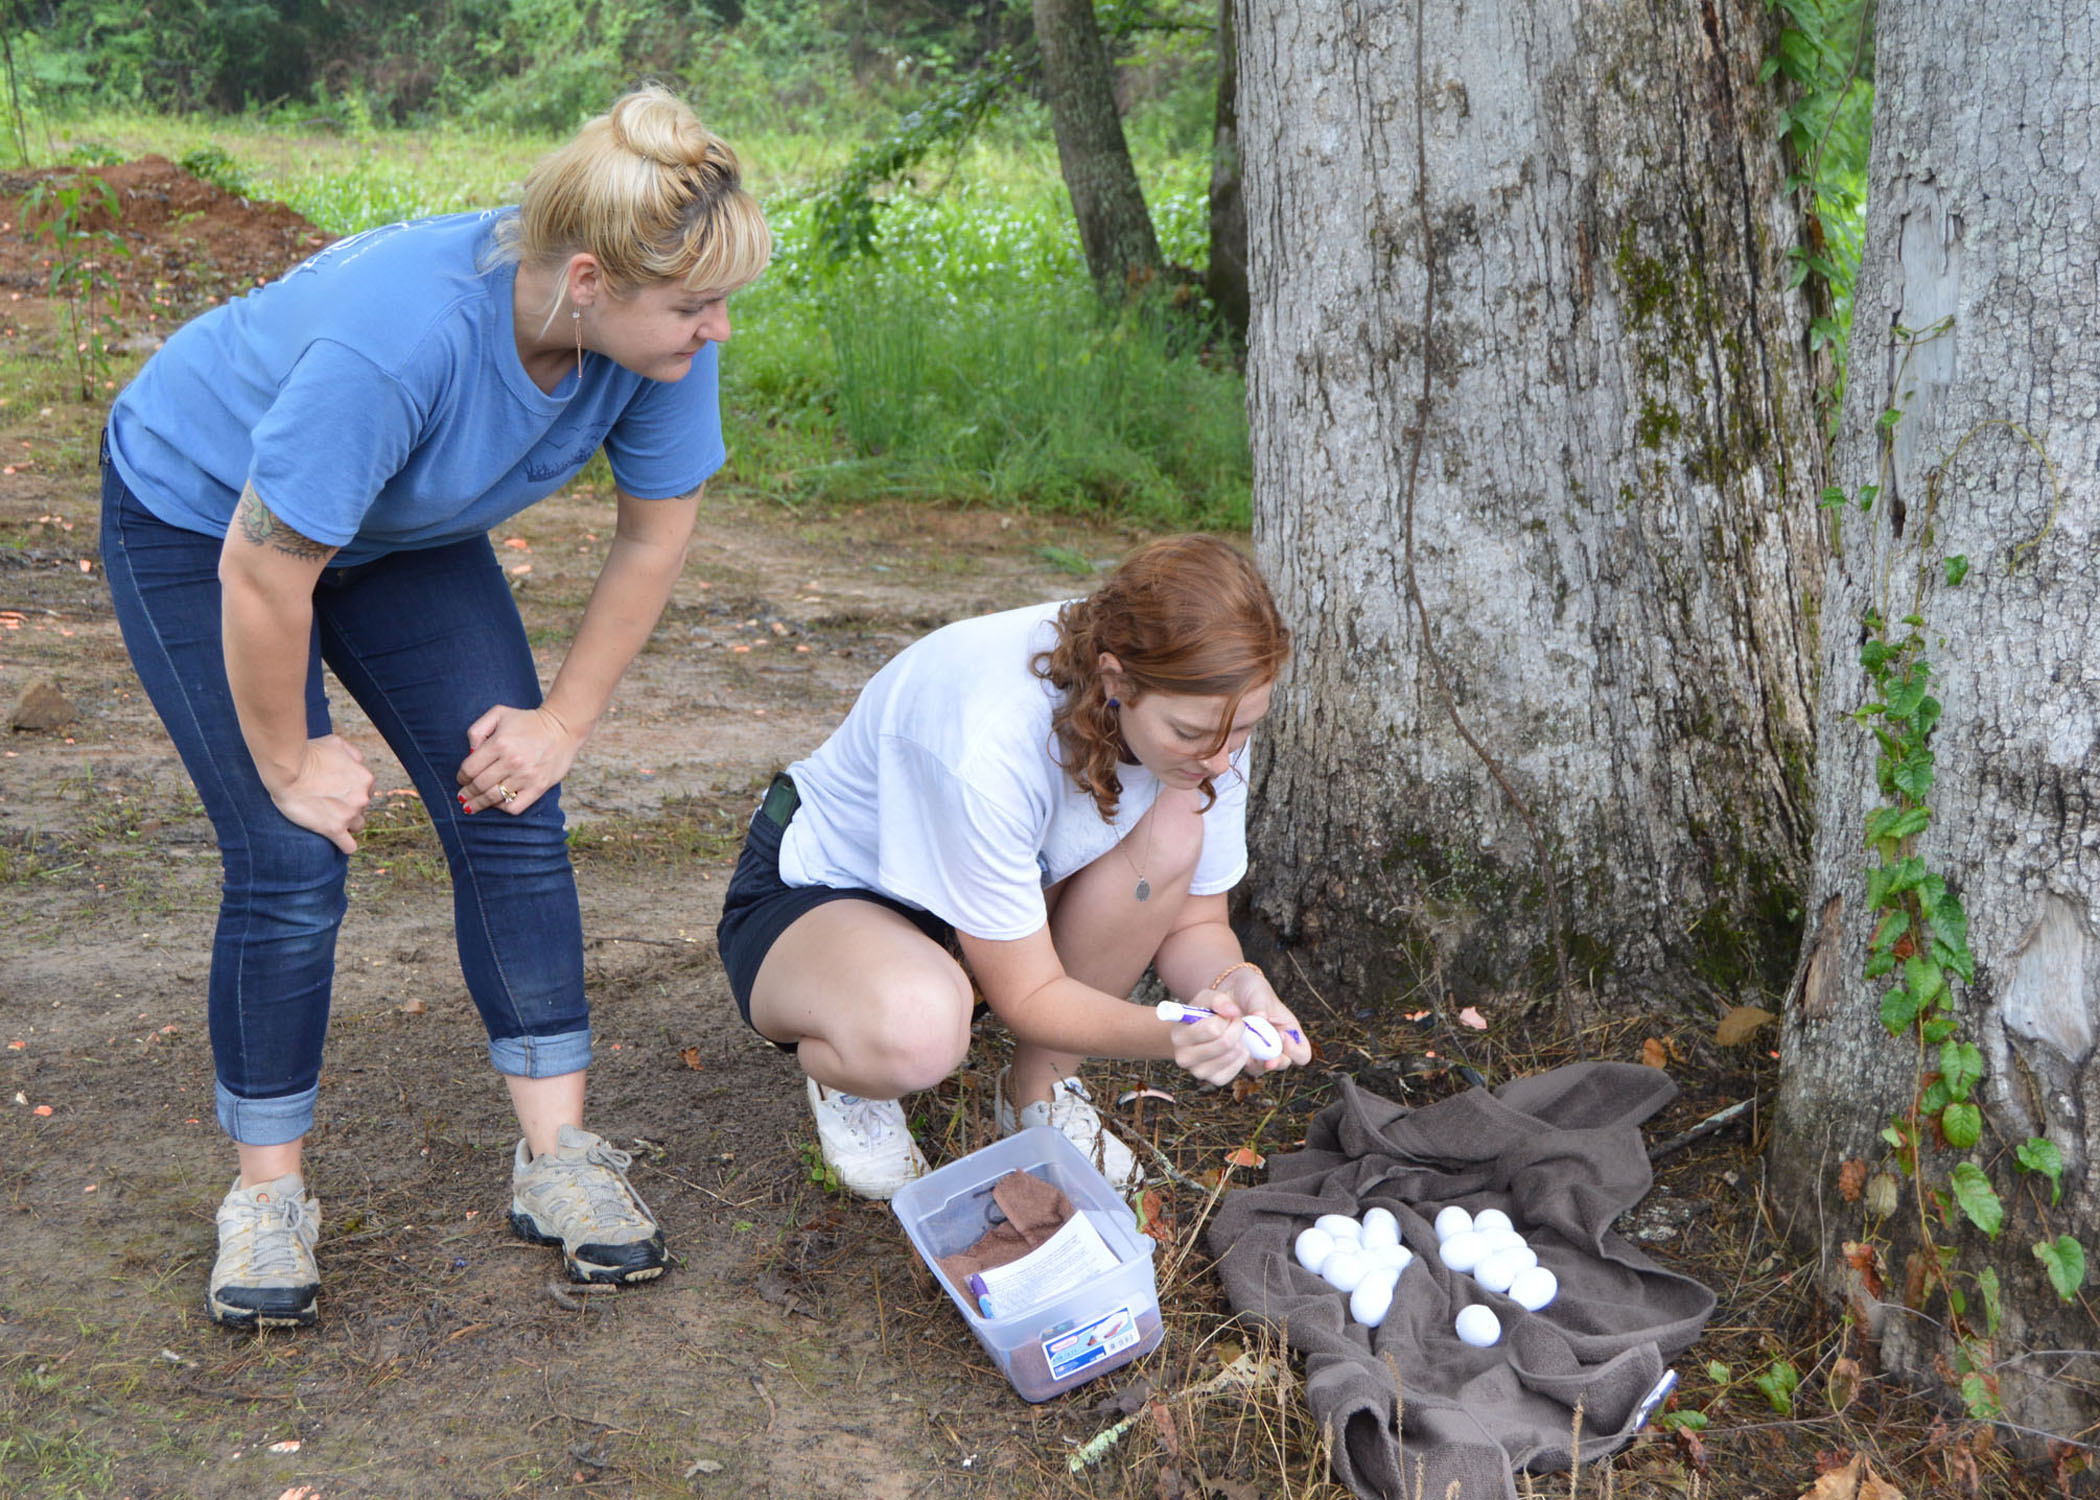 4-H summer camp offers open enrollment